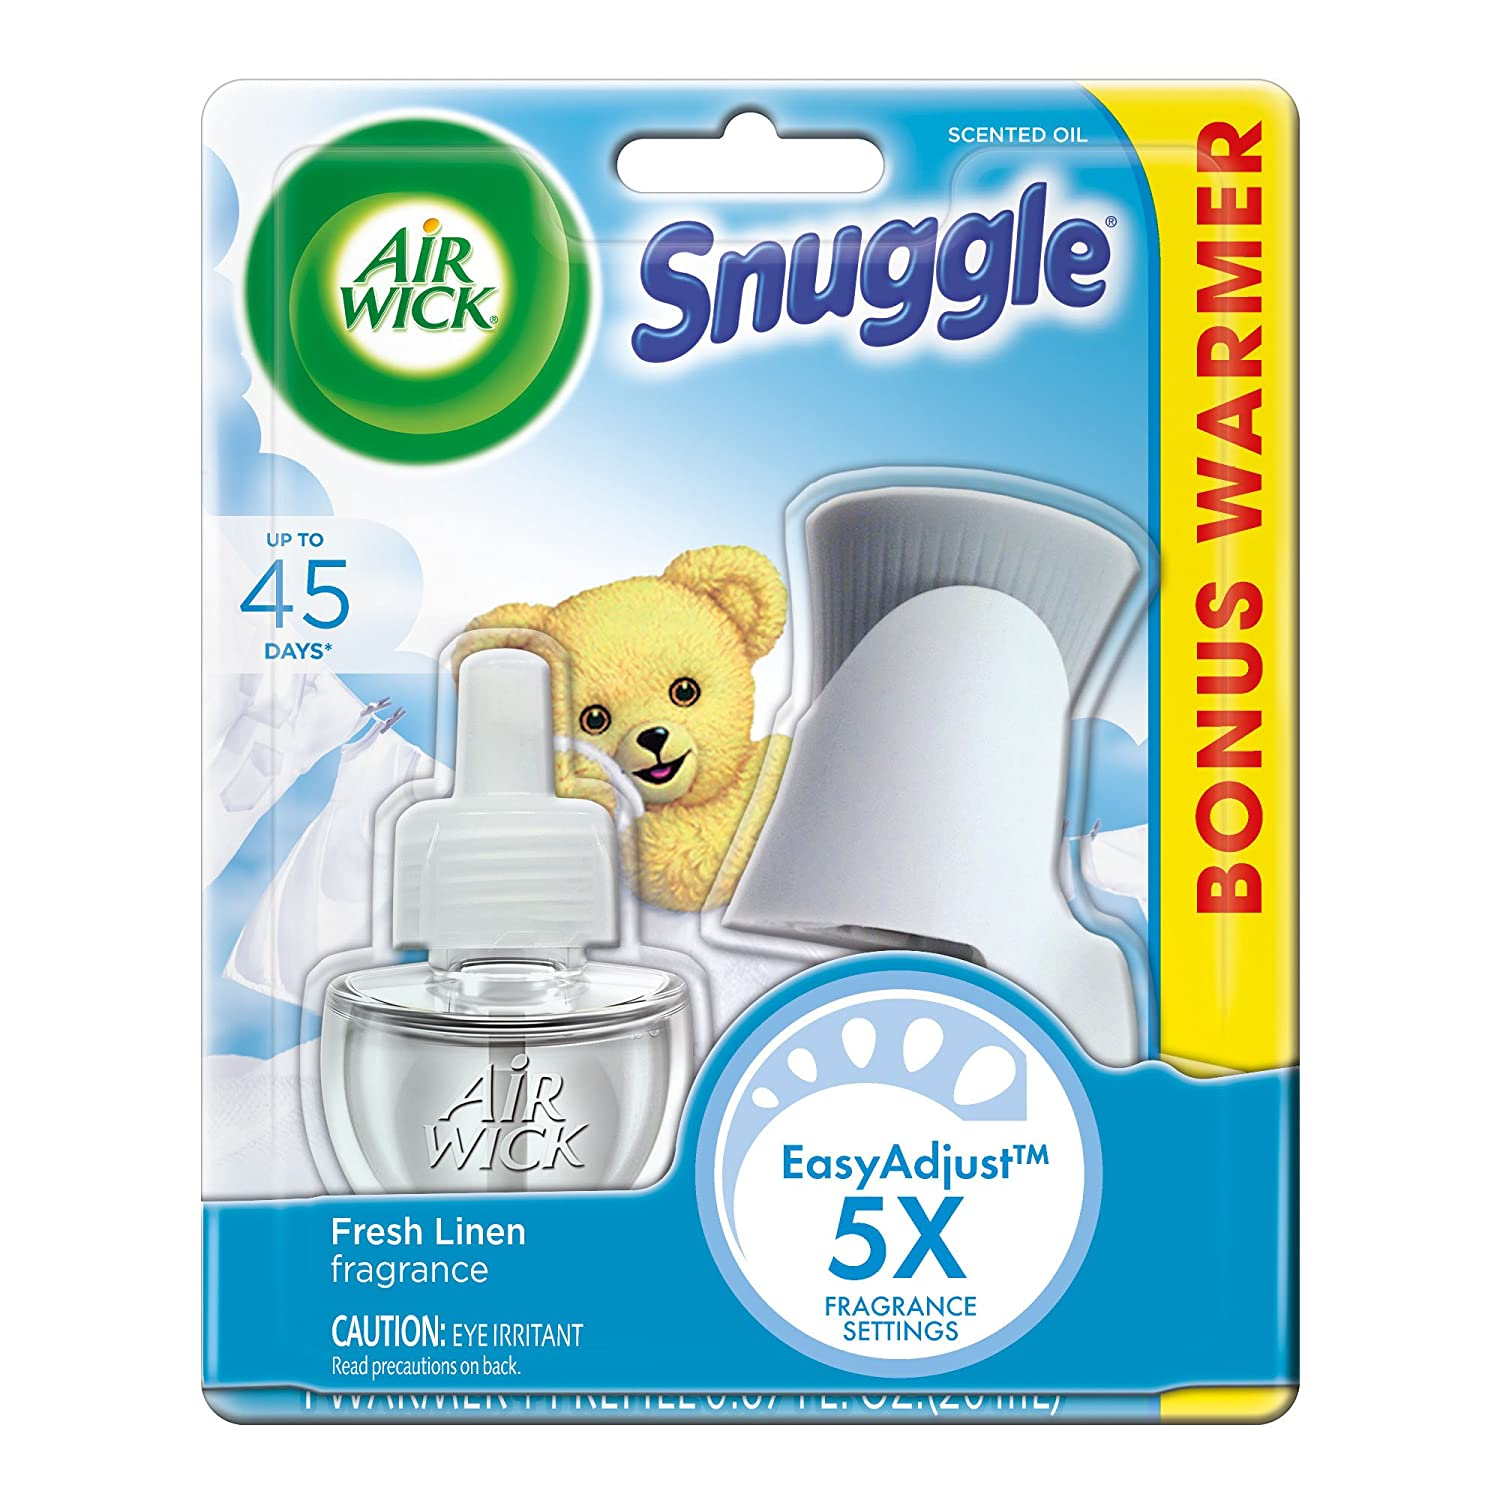 Air Wick Scented Oil Kit (Warmer + 1 Refill), Snuggle Fresh Linen, 1ct F00001